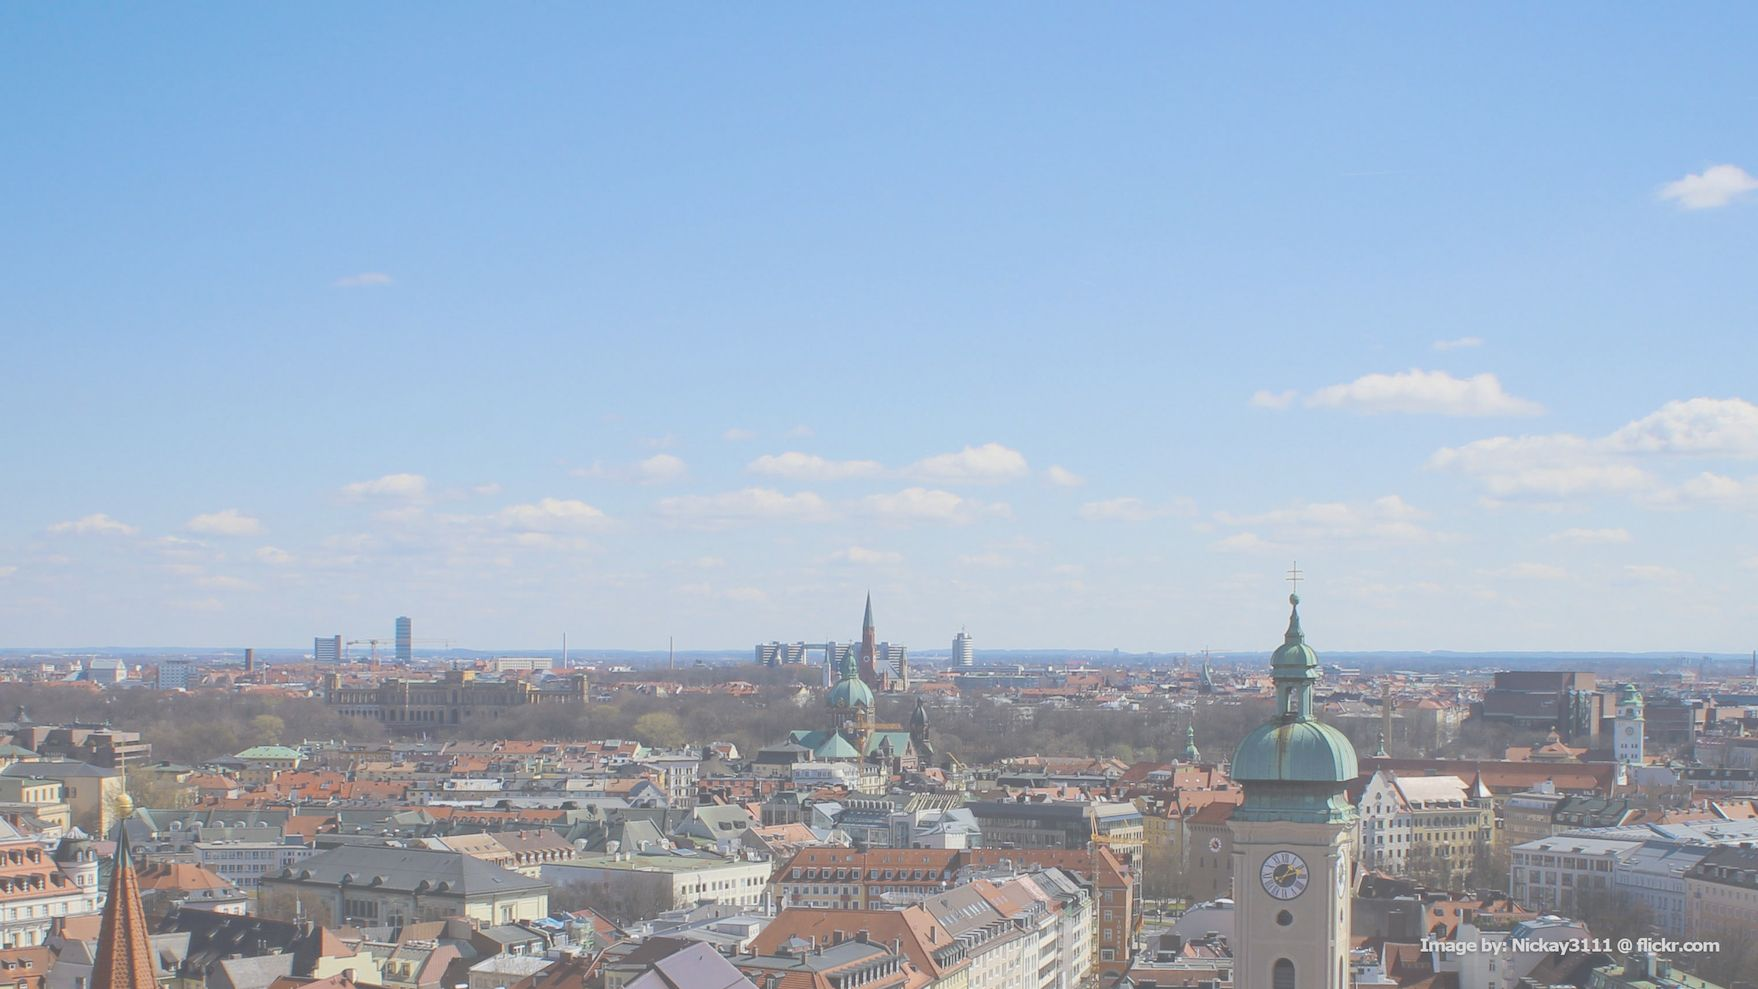 Munich background img 1